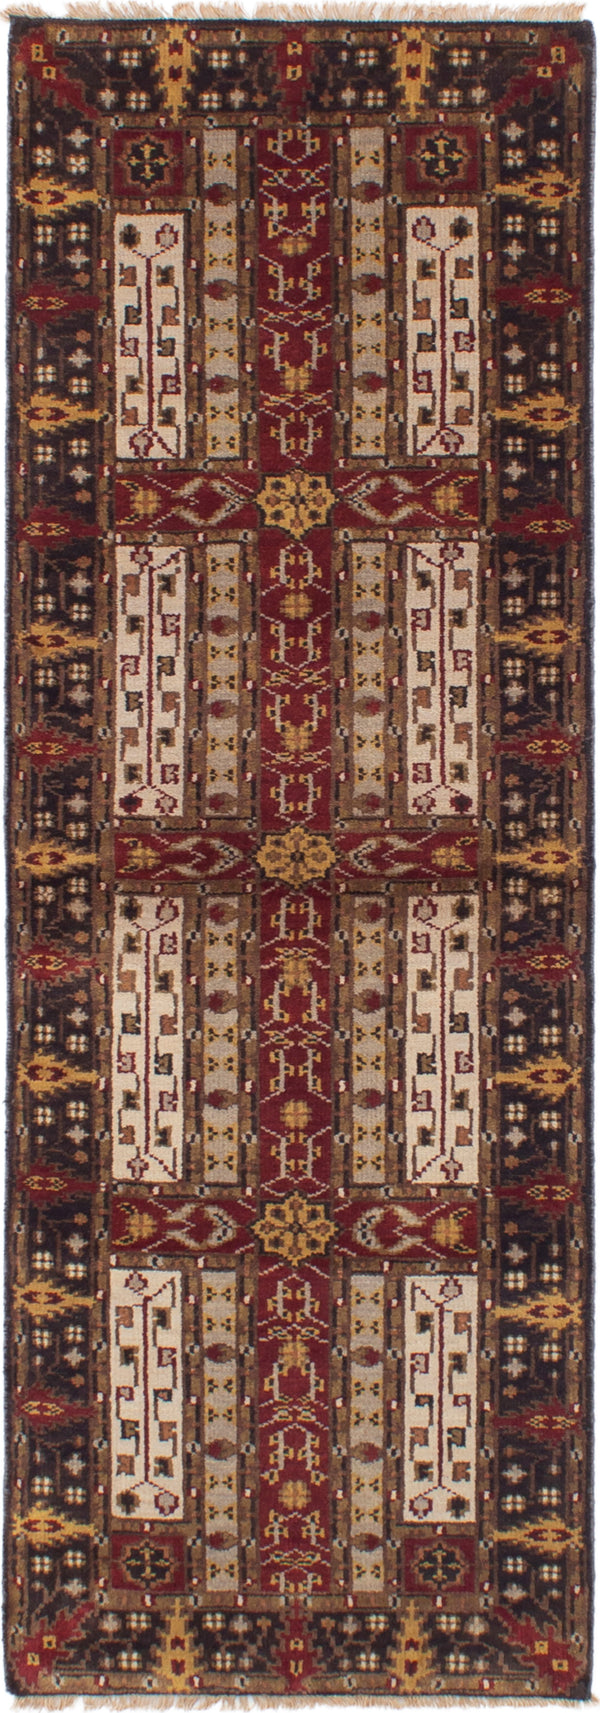 Hand-knotted Indian Bordered  Traditional Royal-Mahal Runner rug  Dark Red 2.6 x 8